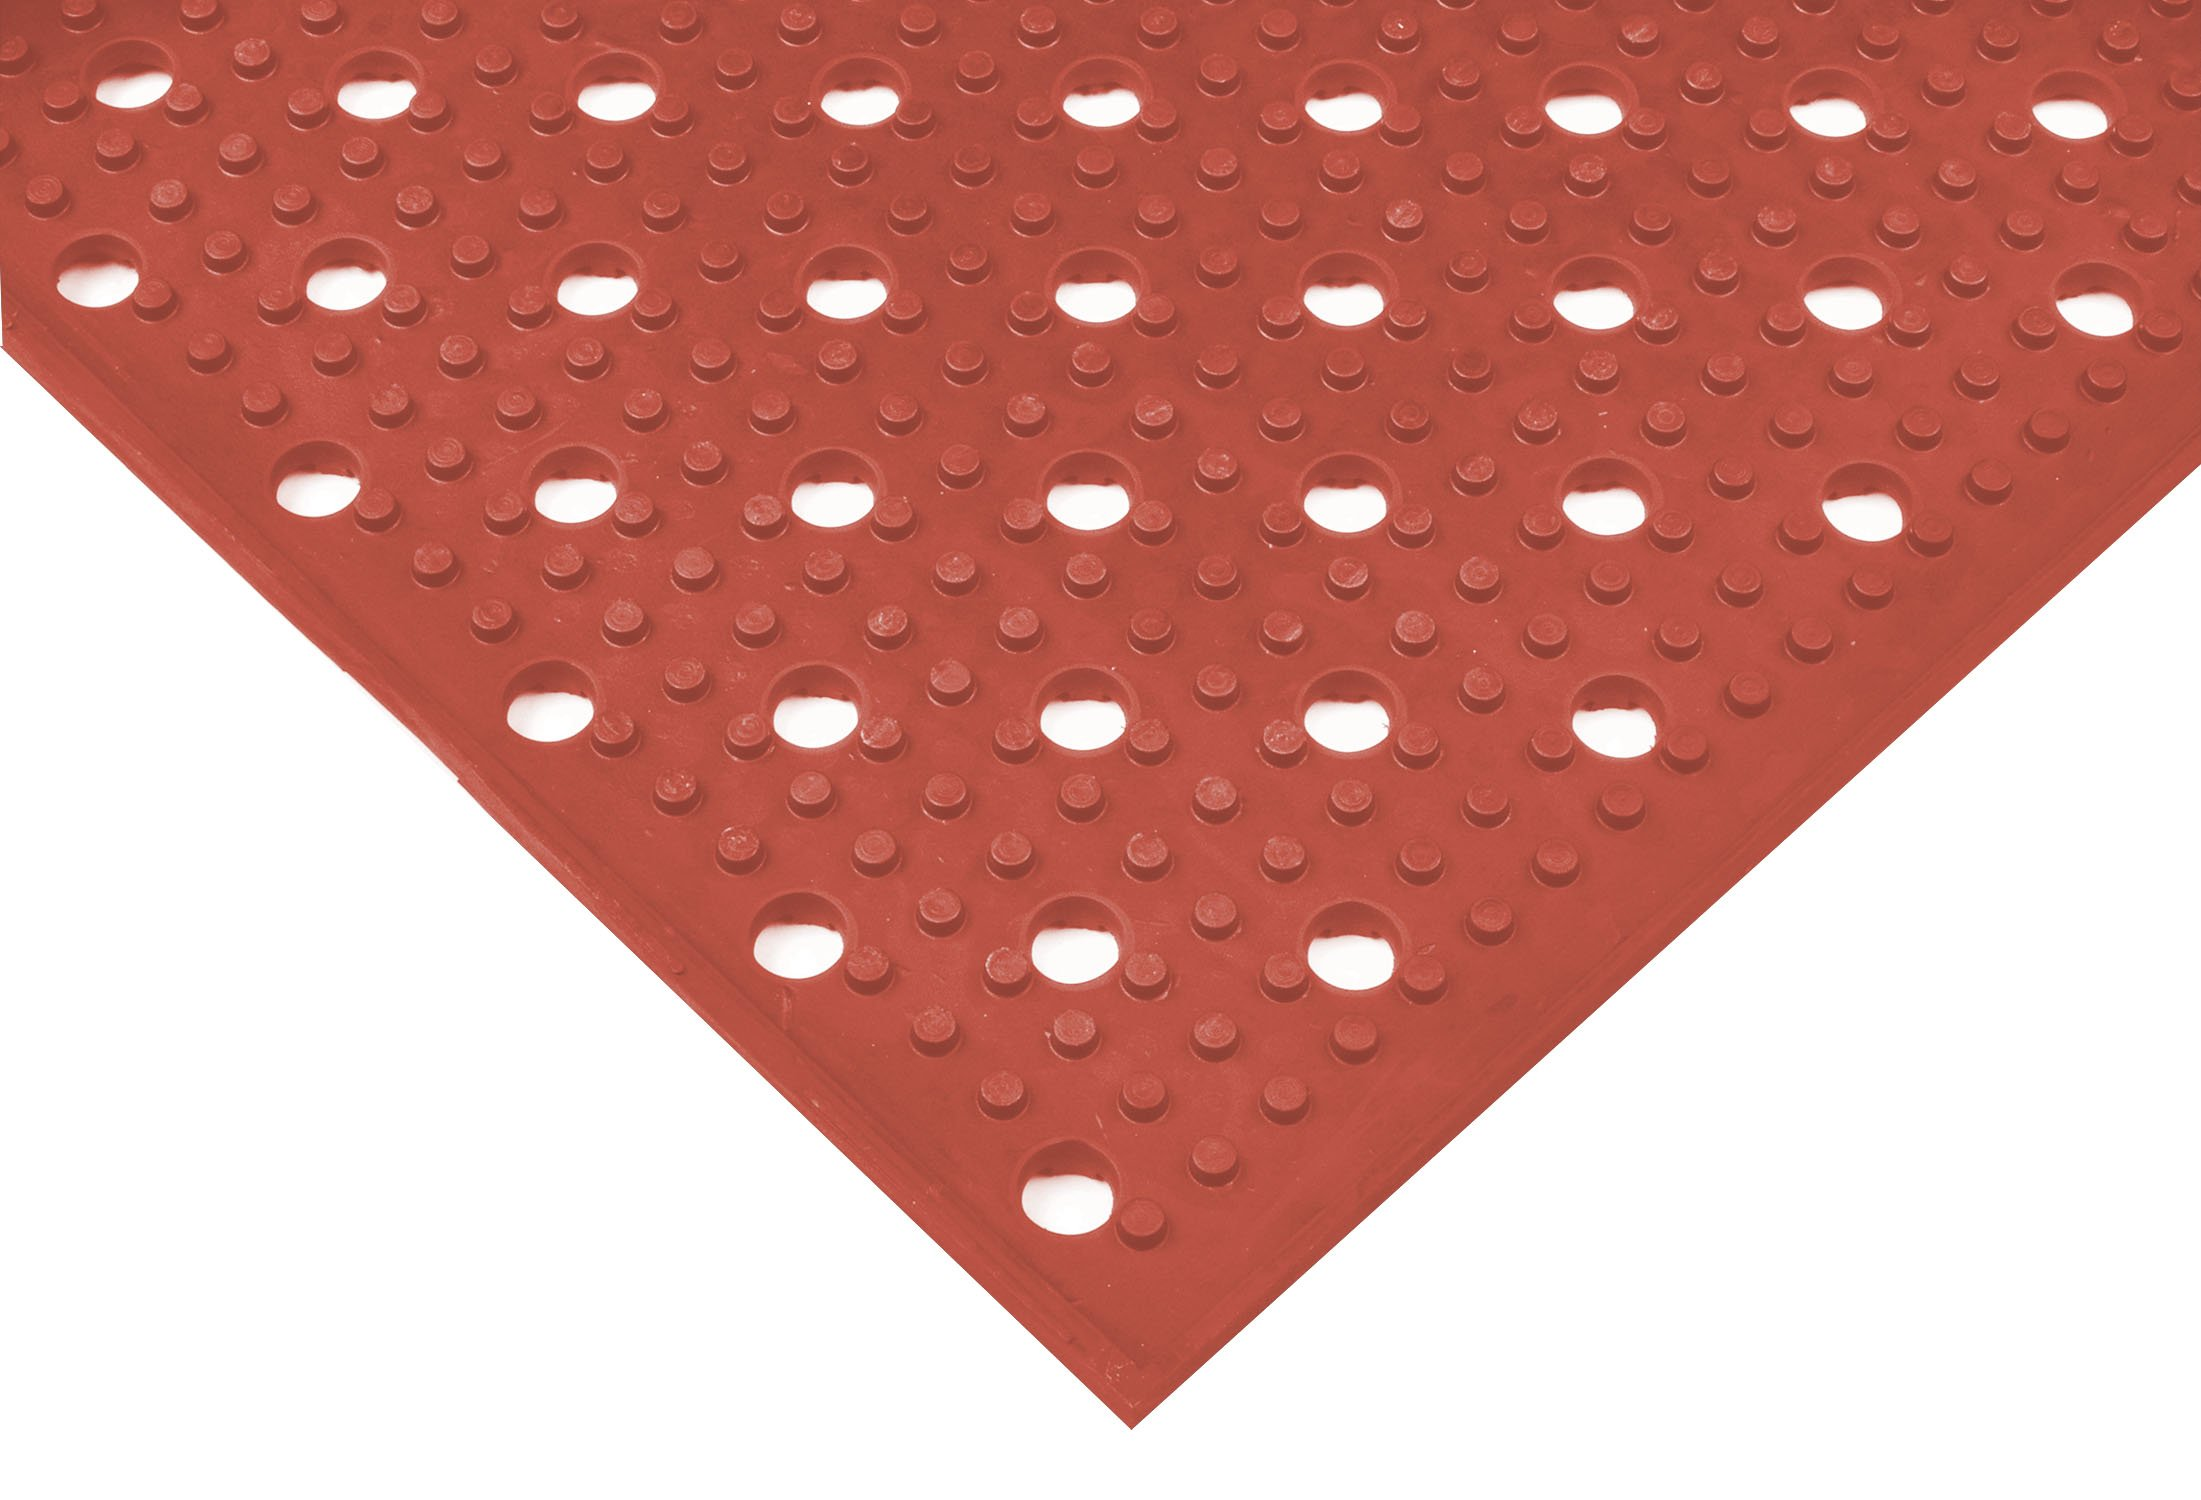 NoTrax T23 Heavy-Duty Rubber Multi-Mat II Safety/Anti-Fatigue Mat, for Wet or Greasy Areas, 3' Width x 8' Length x 3/8'' Thickness, Red by NoTrax Floor Matting (Image #1)